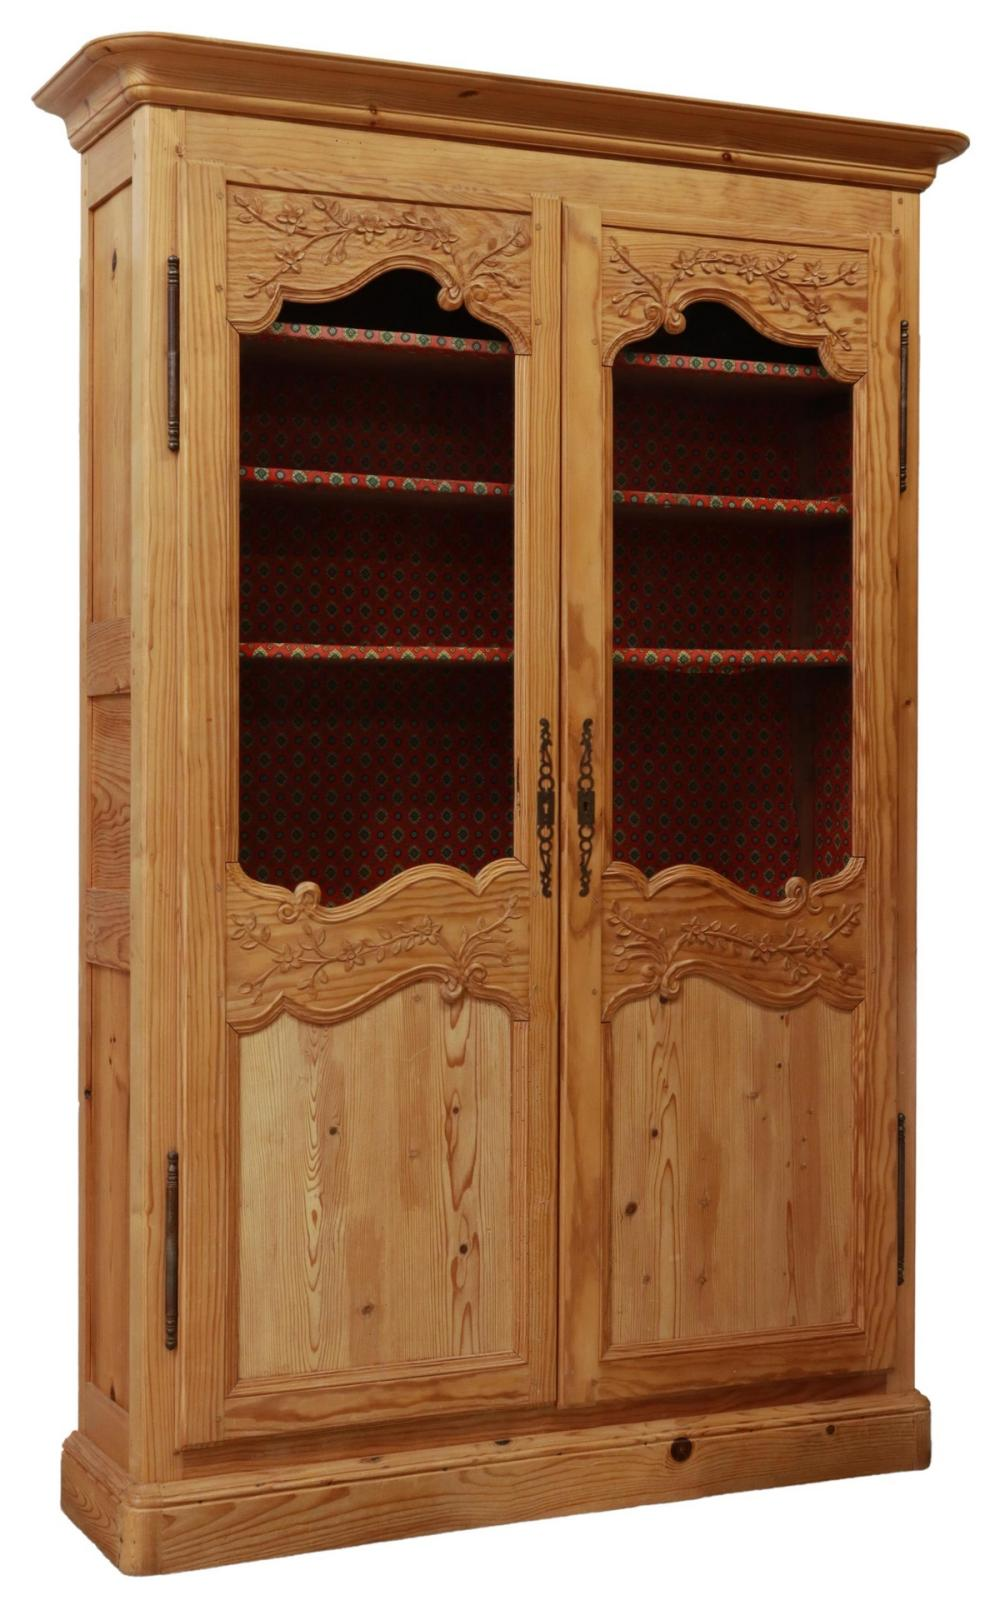 FRENCH PROVINCIAL CARVED PINE VITRINE BOOKCASE